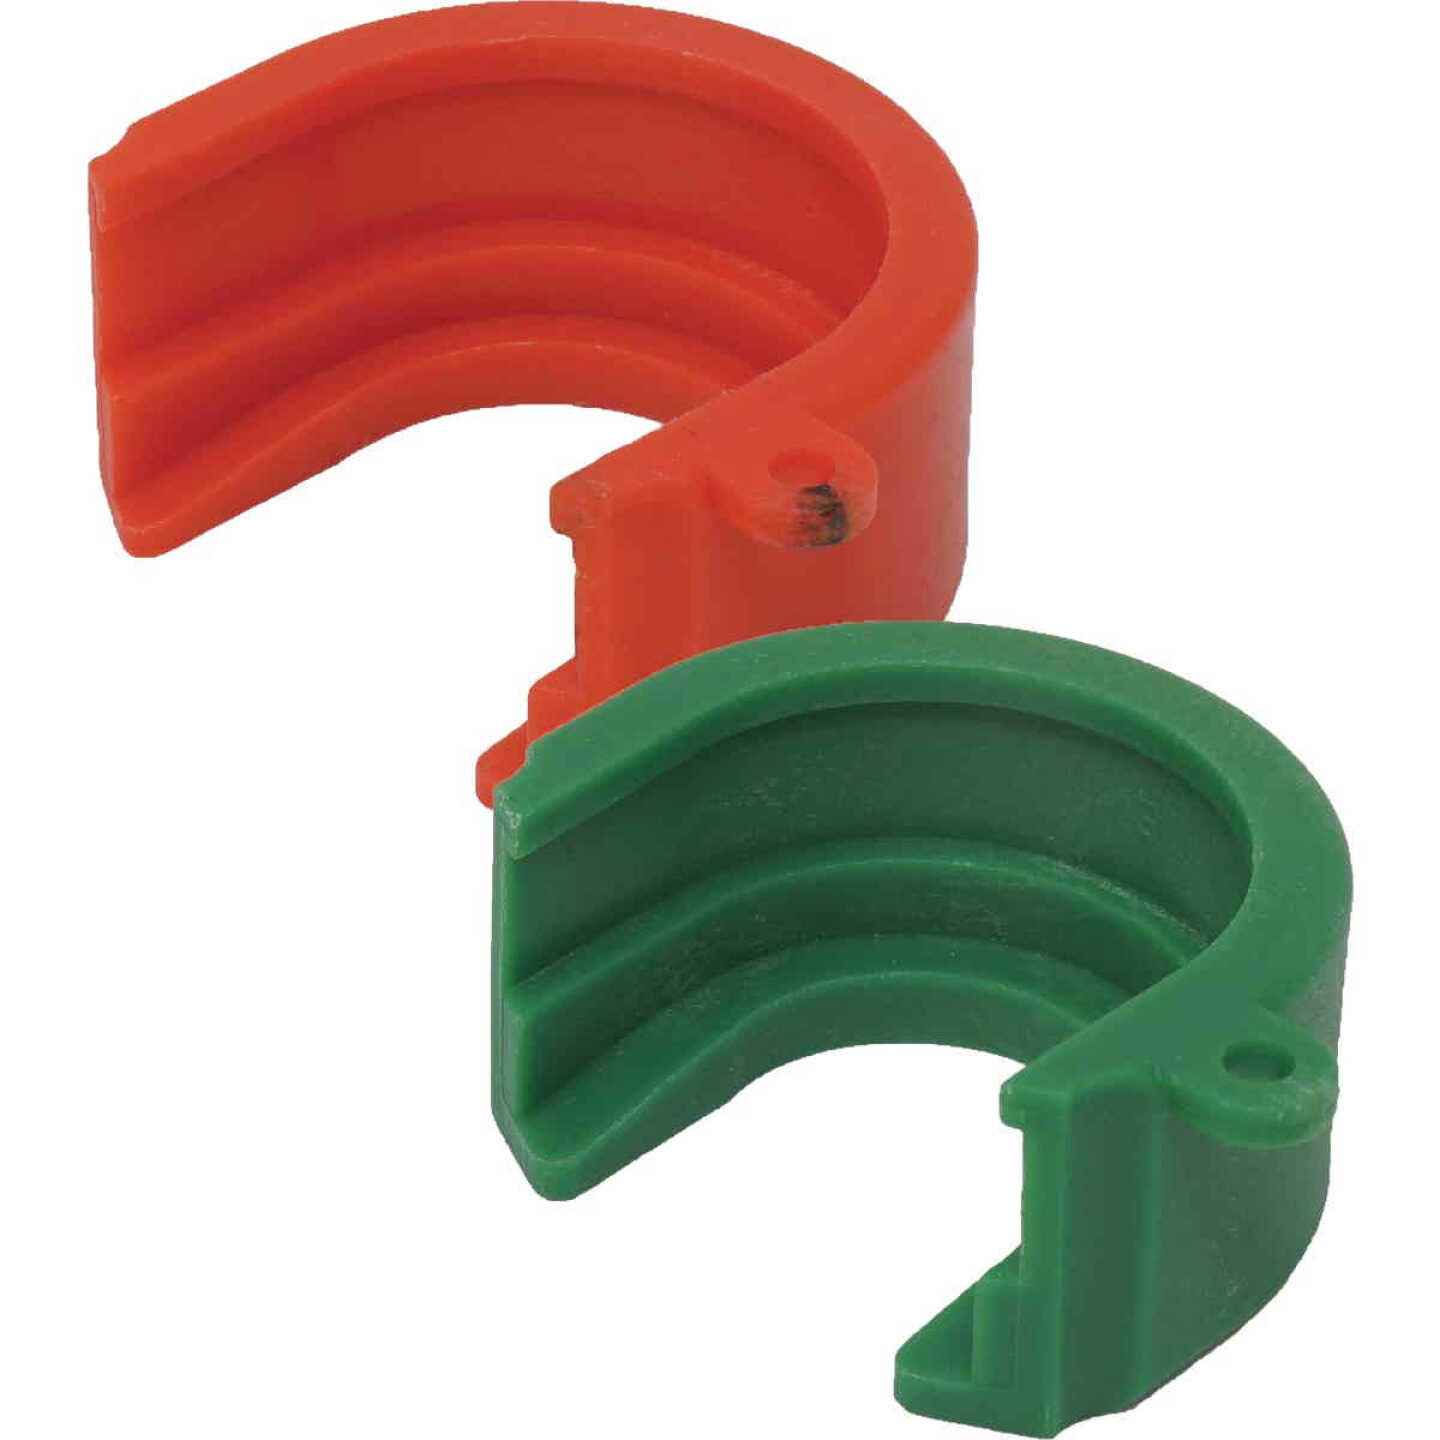 Southwire SimPush 1/2 In. & 3/4 In. Push-To-Install EMT Conduit Removal Tool Image 1